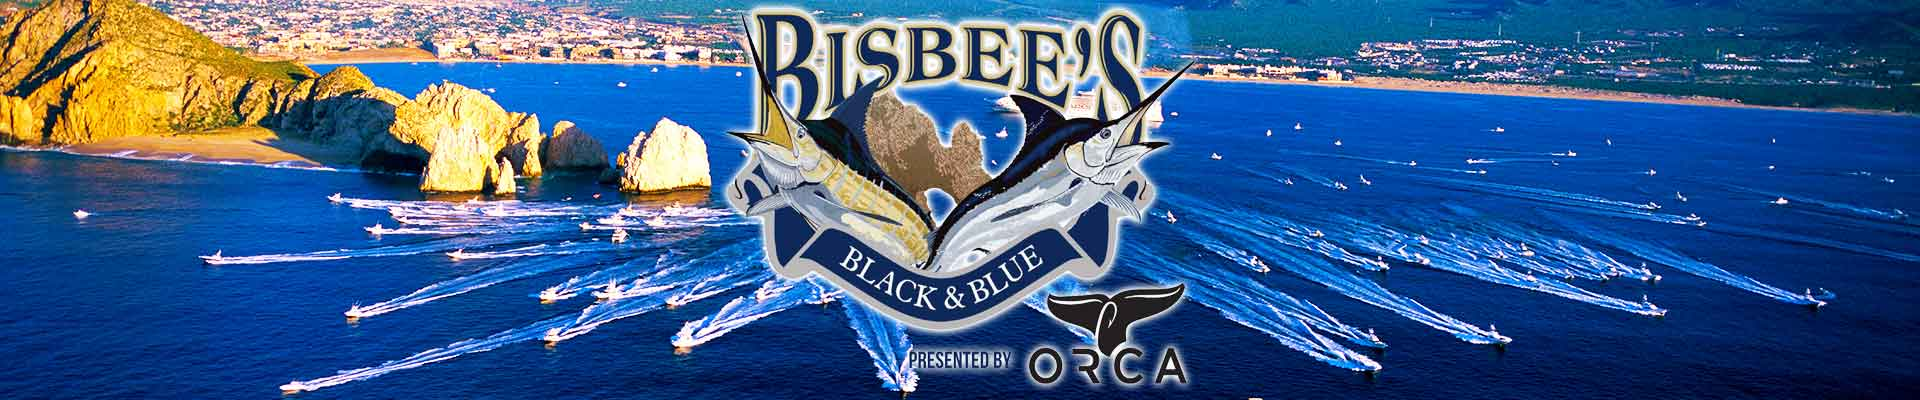 2018 Bisbee's Black and Blue Marlin Tournaments - CatchStat.com Live Scoring Fishing Tournament Software Real Time